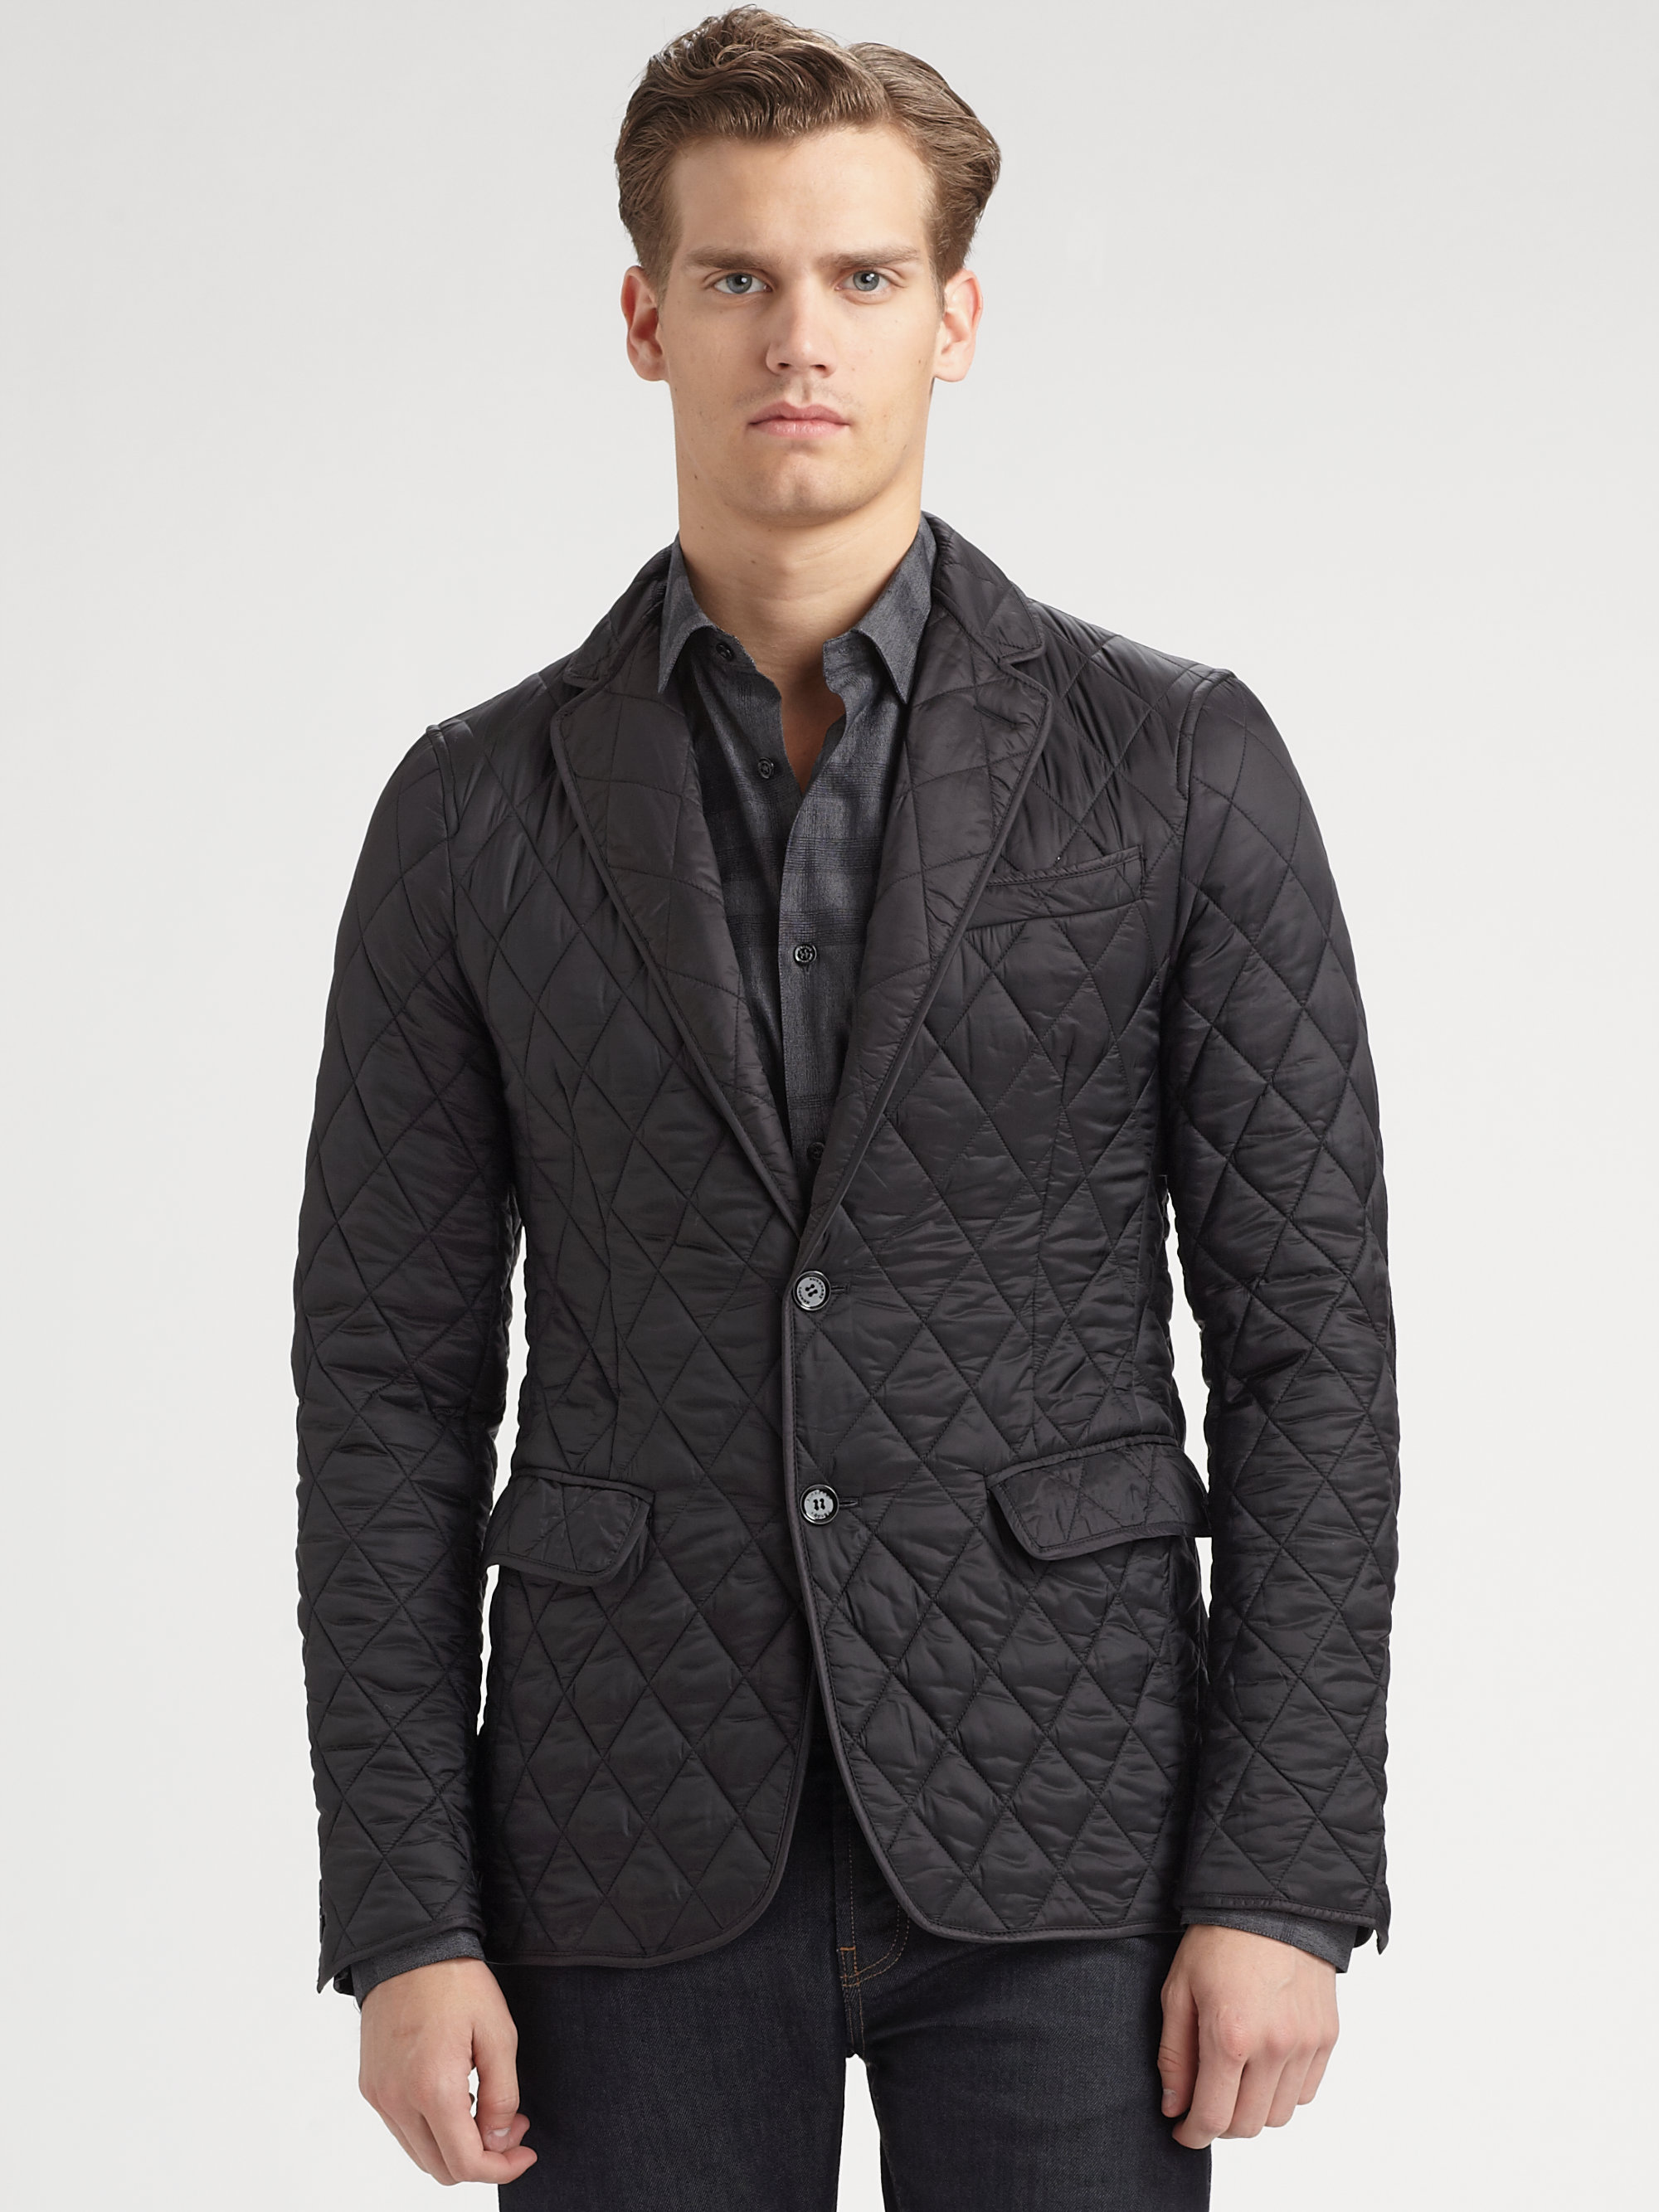 Burberry Ledbury Quilted Blazer In Black For Men Lyst